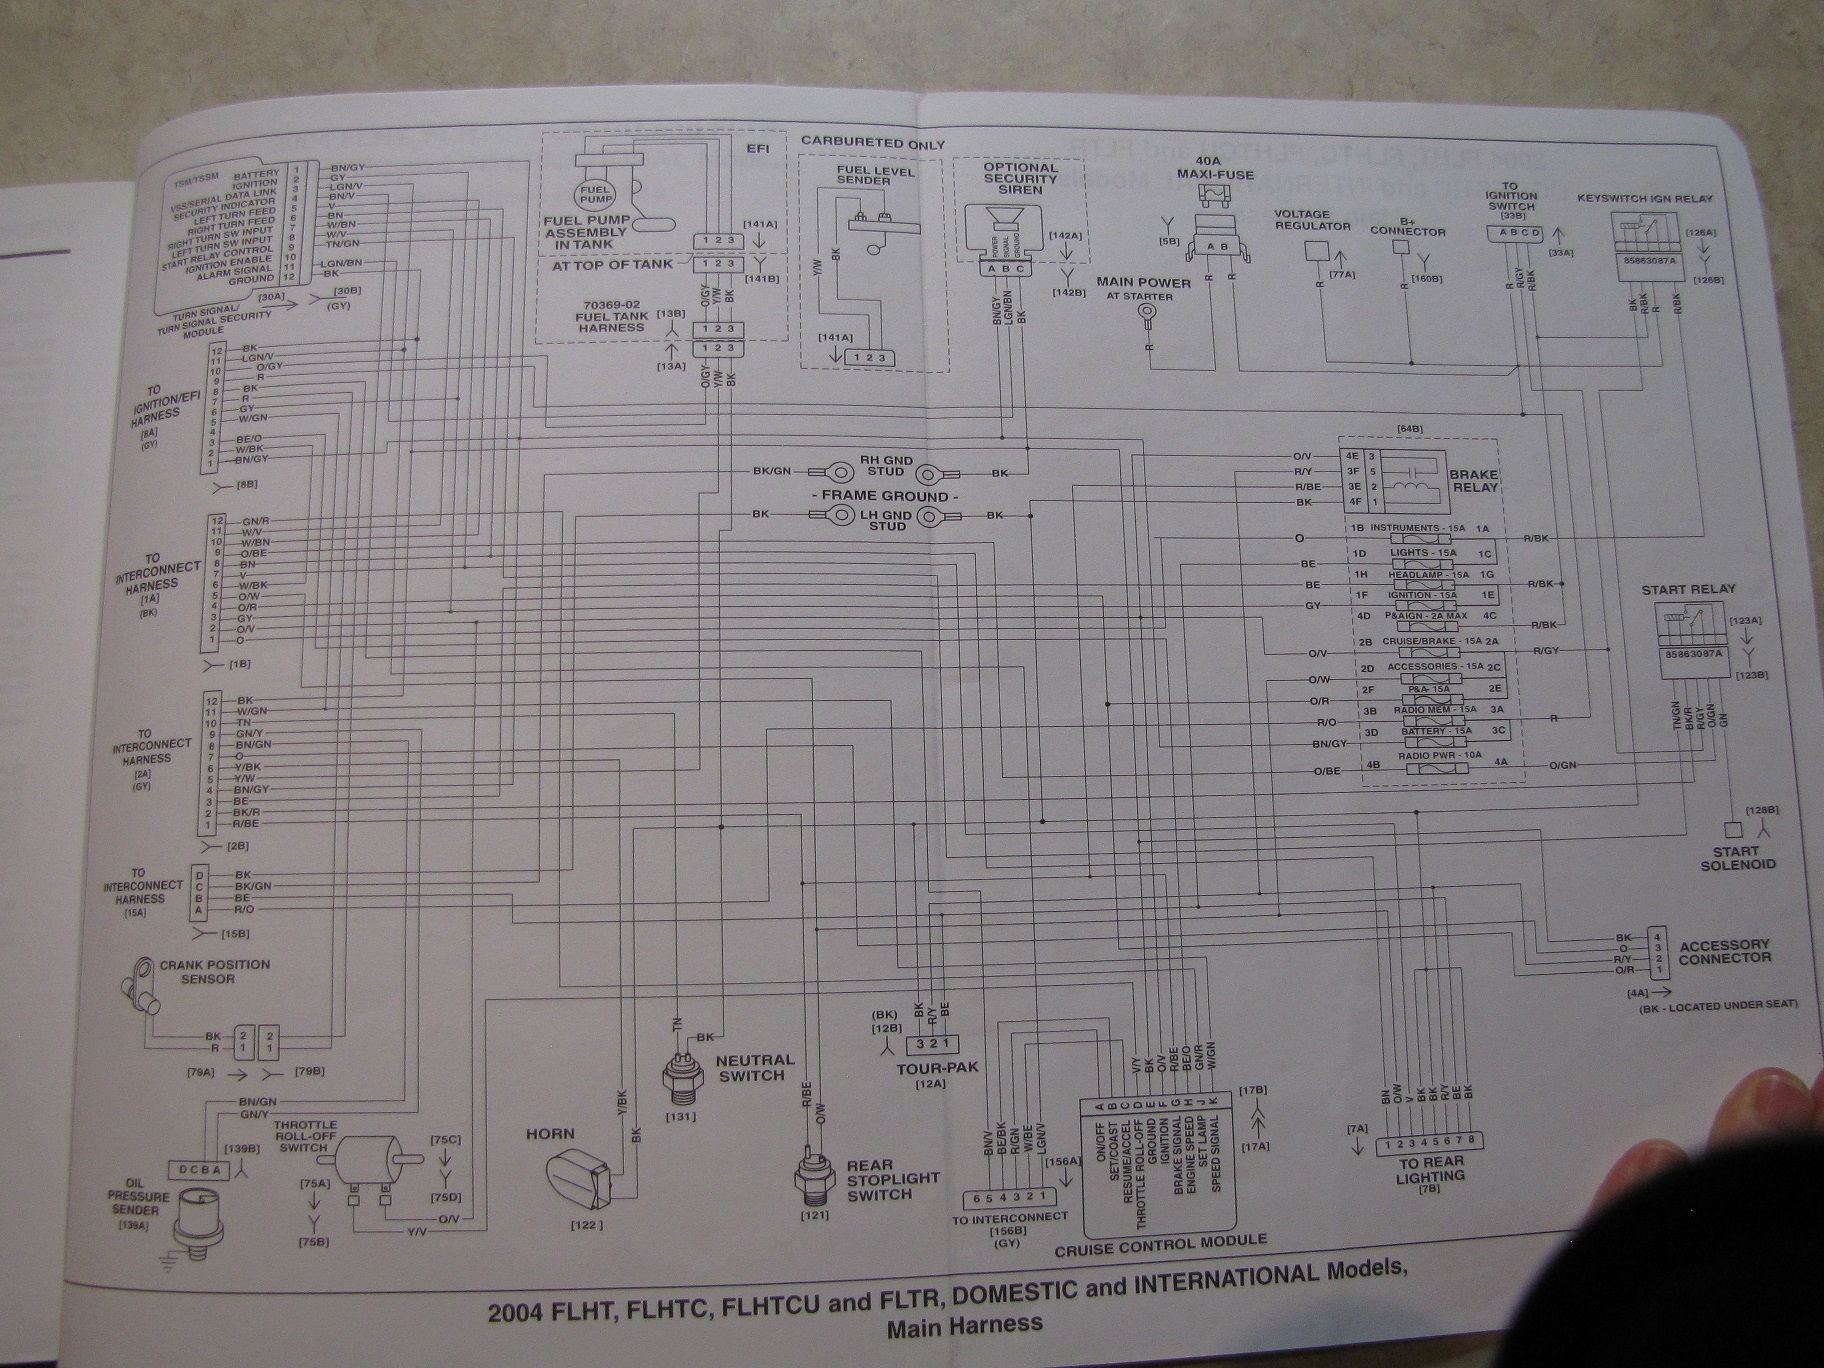 Ski Doo Heated Grip Wiring Diagrams Trusted Grips For Goldwing Diagram 2013 Harley 2012 Installing